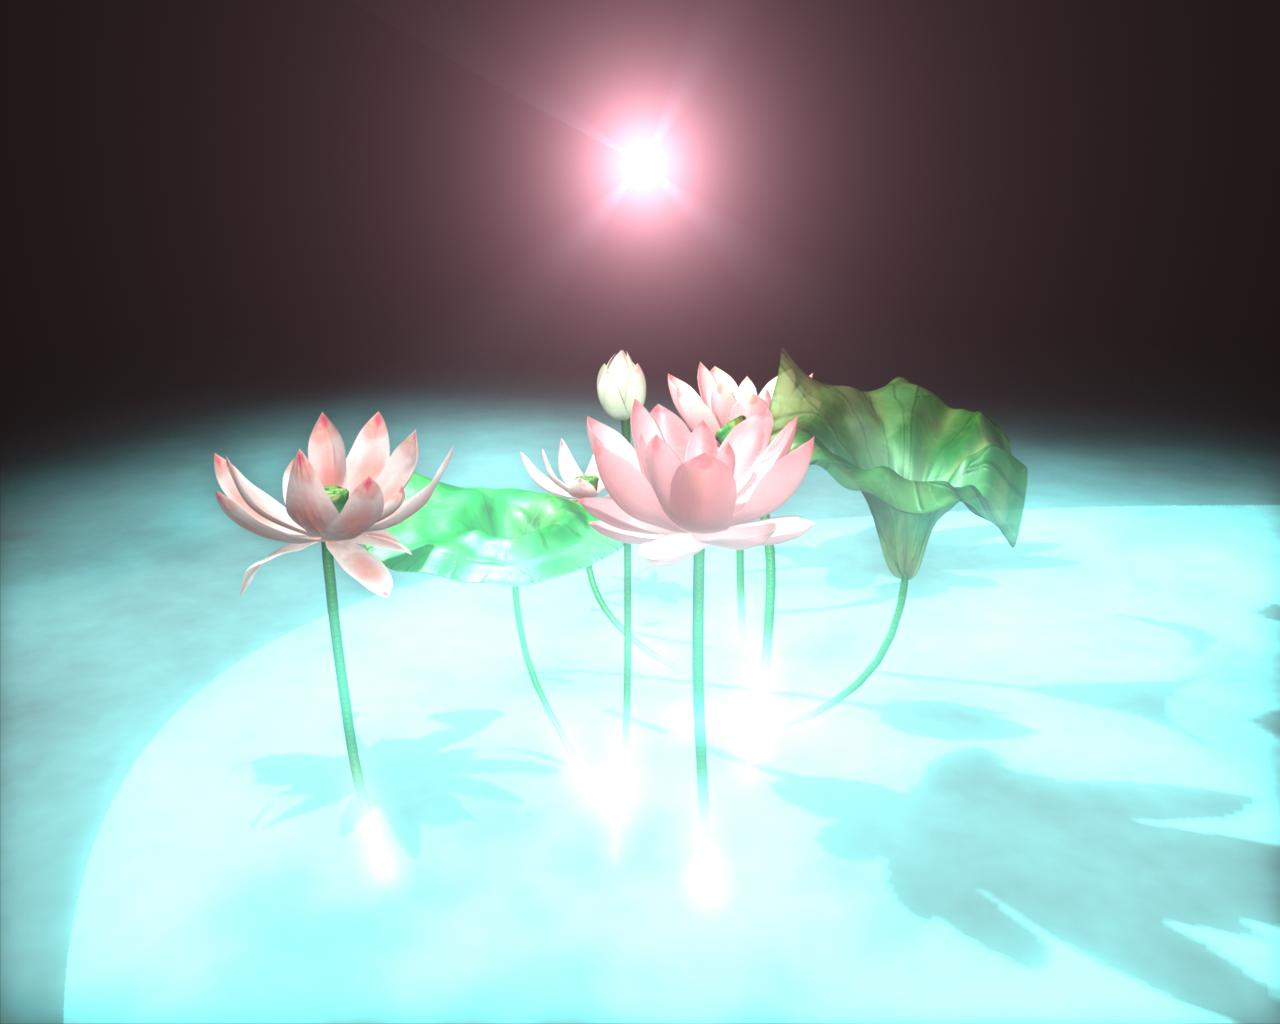 Painting lotus flowers in other dimensions photo 3 blogs painting lotus flowers in other dimensions photo izmirmasajfo